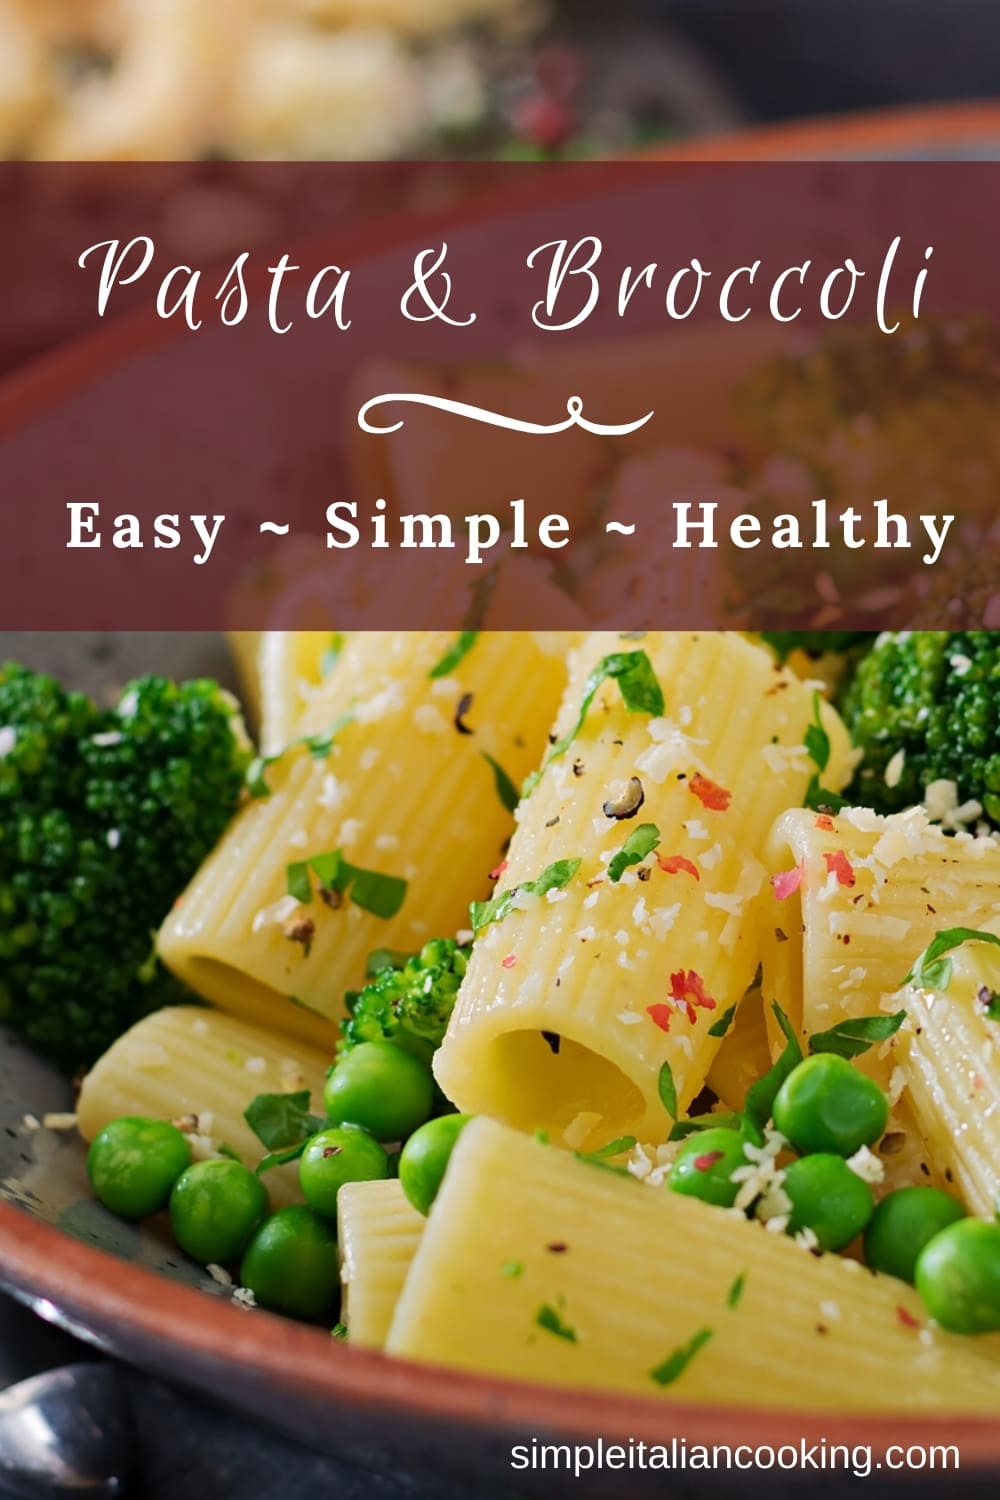 Here's an Easy Italian Pasta and Broccoli Recipe